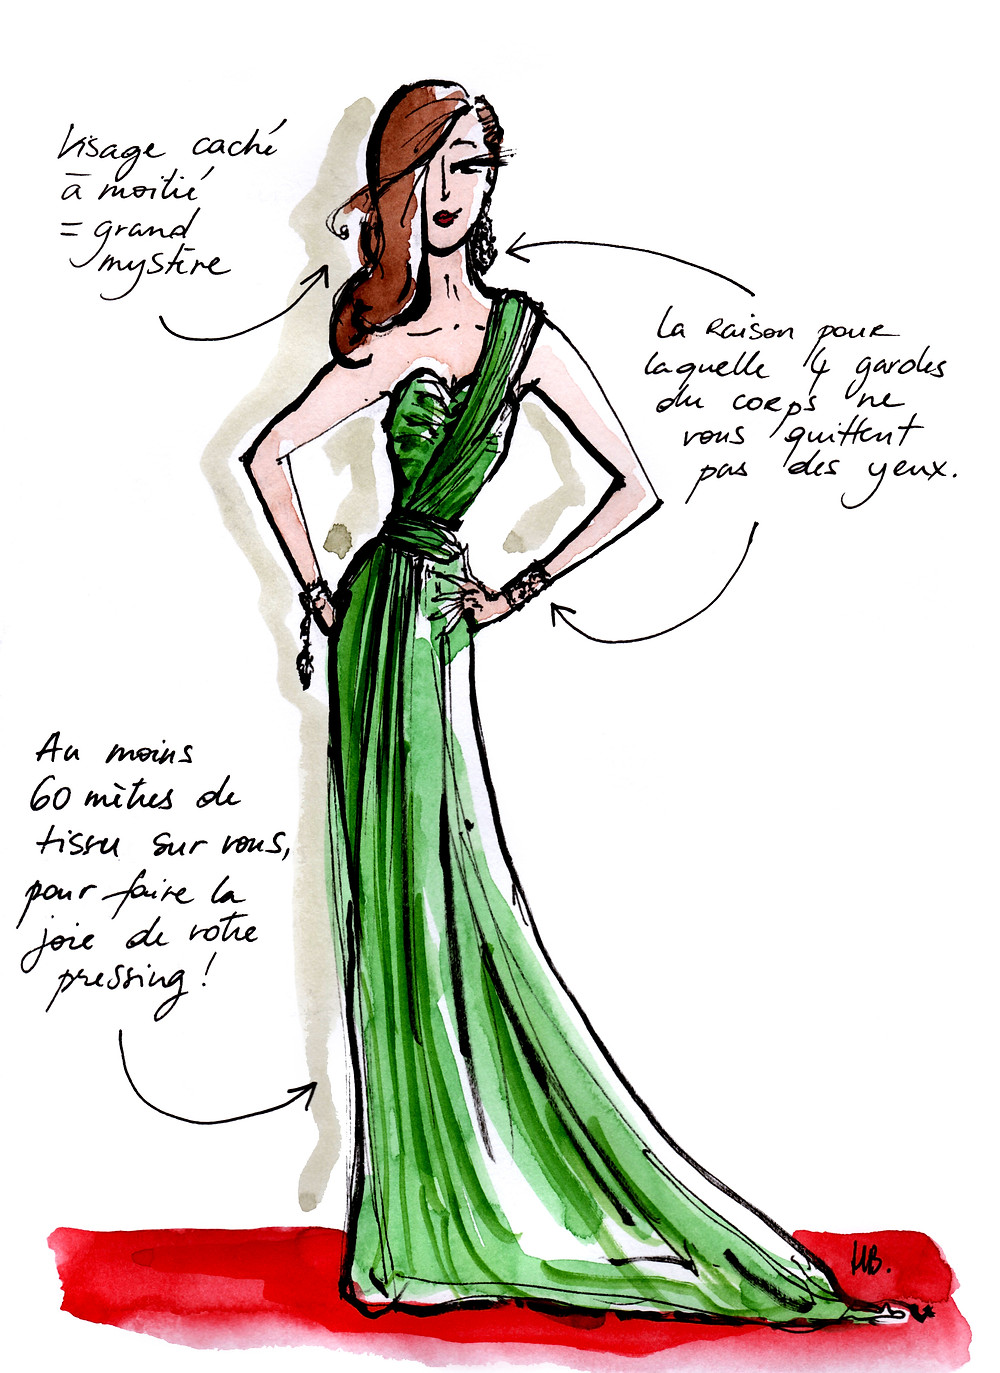 Tenue Festival de Cannes - La valeur sûre - Dessin/Illustration Habile Buston